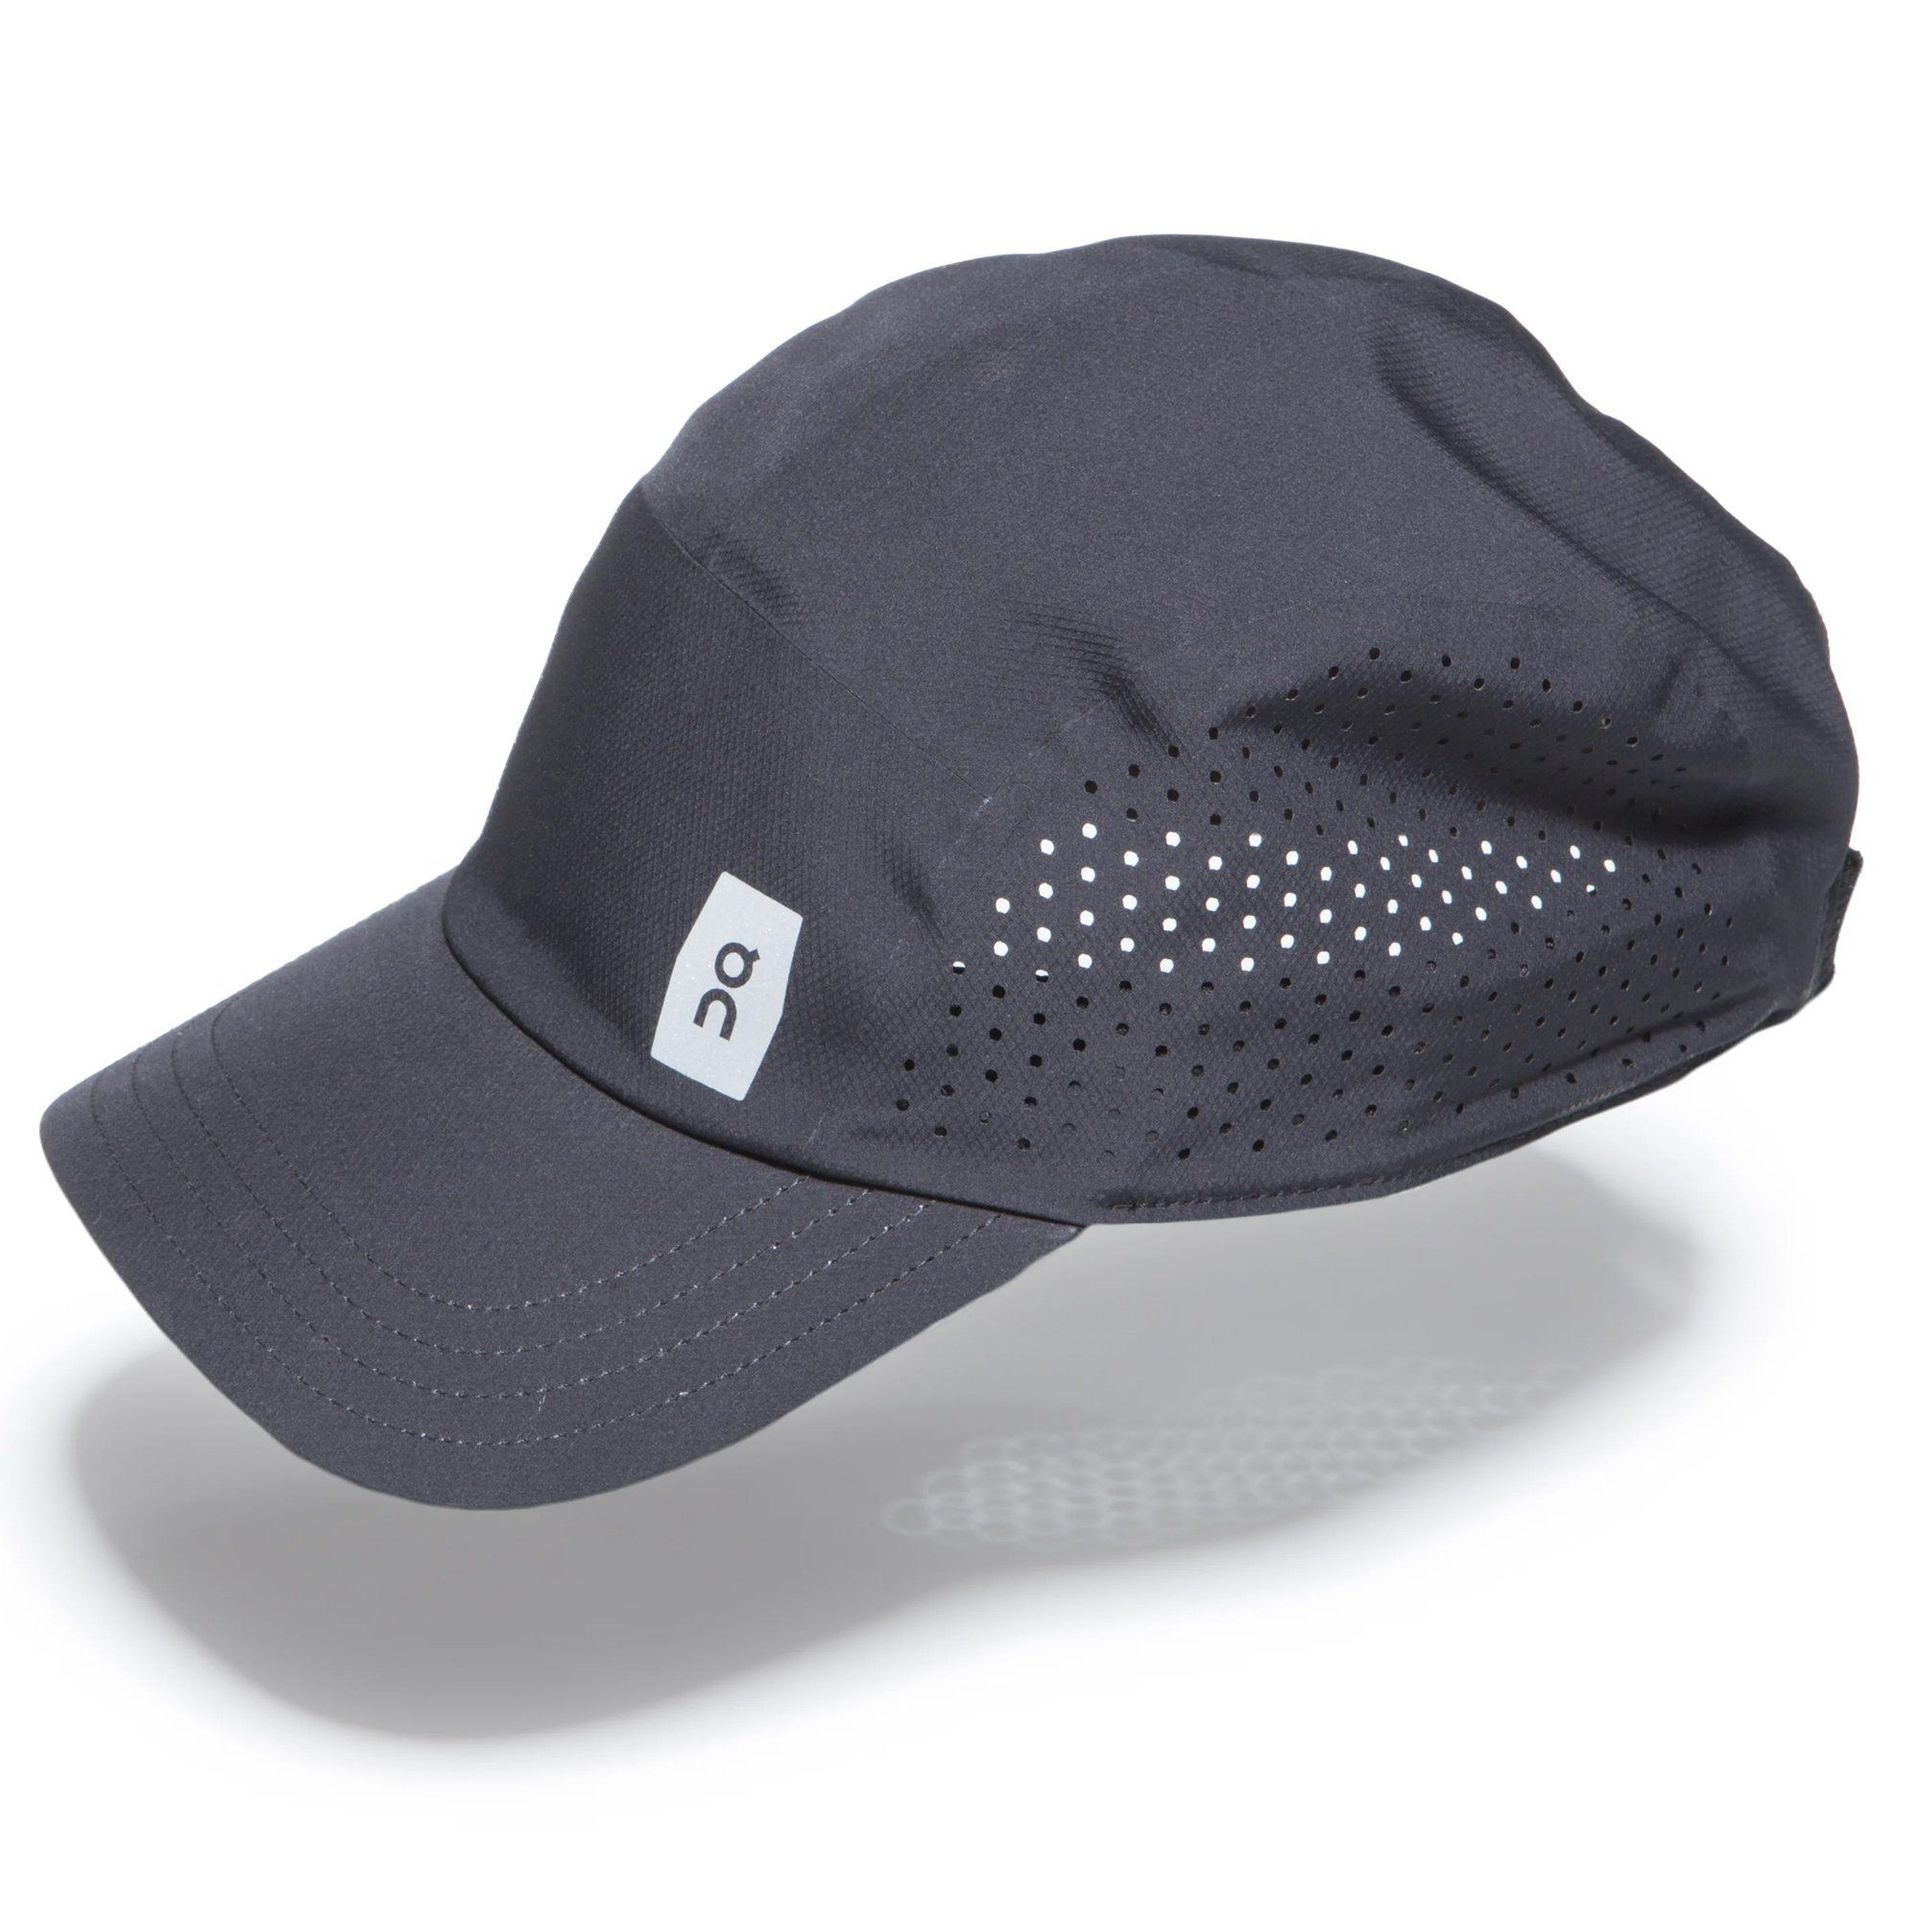 CZAPKA Z DASZKIEM ON RUNNING LIGHTWEIGHT RUNNING HAT BLACK